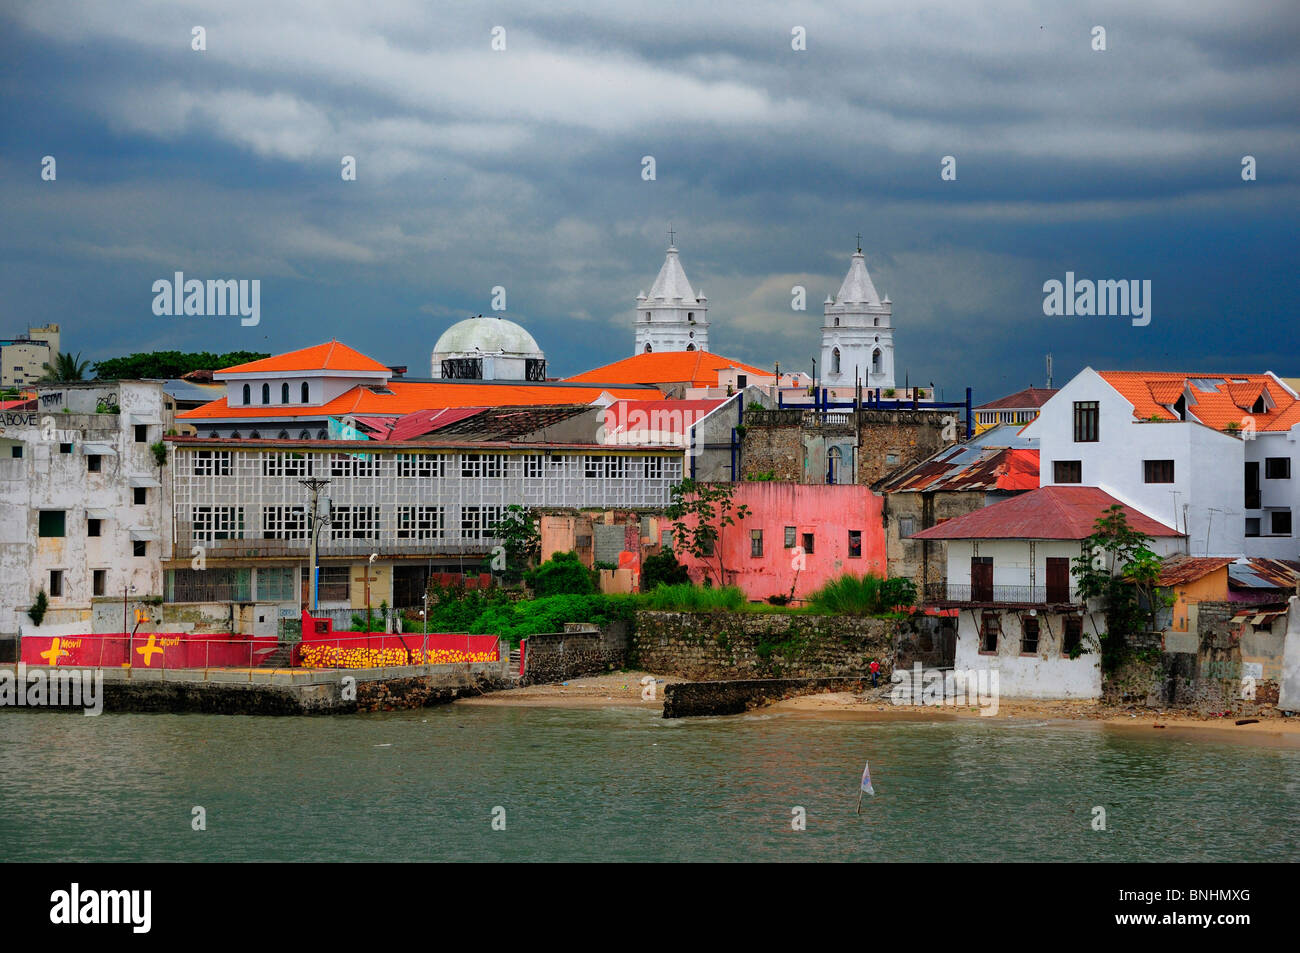 Panama Centro Historica Historic Town Panama City Central America Old town houses shore water - Stock Image